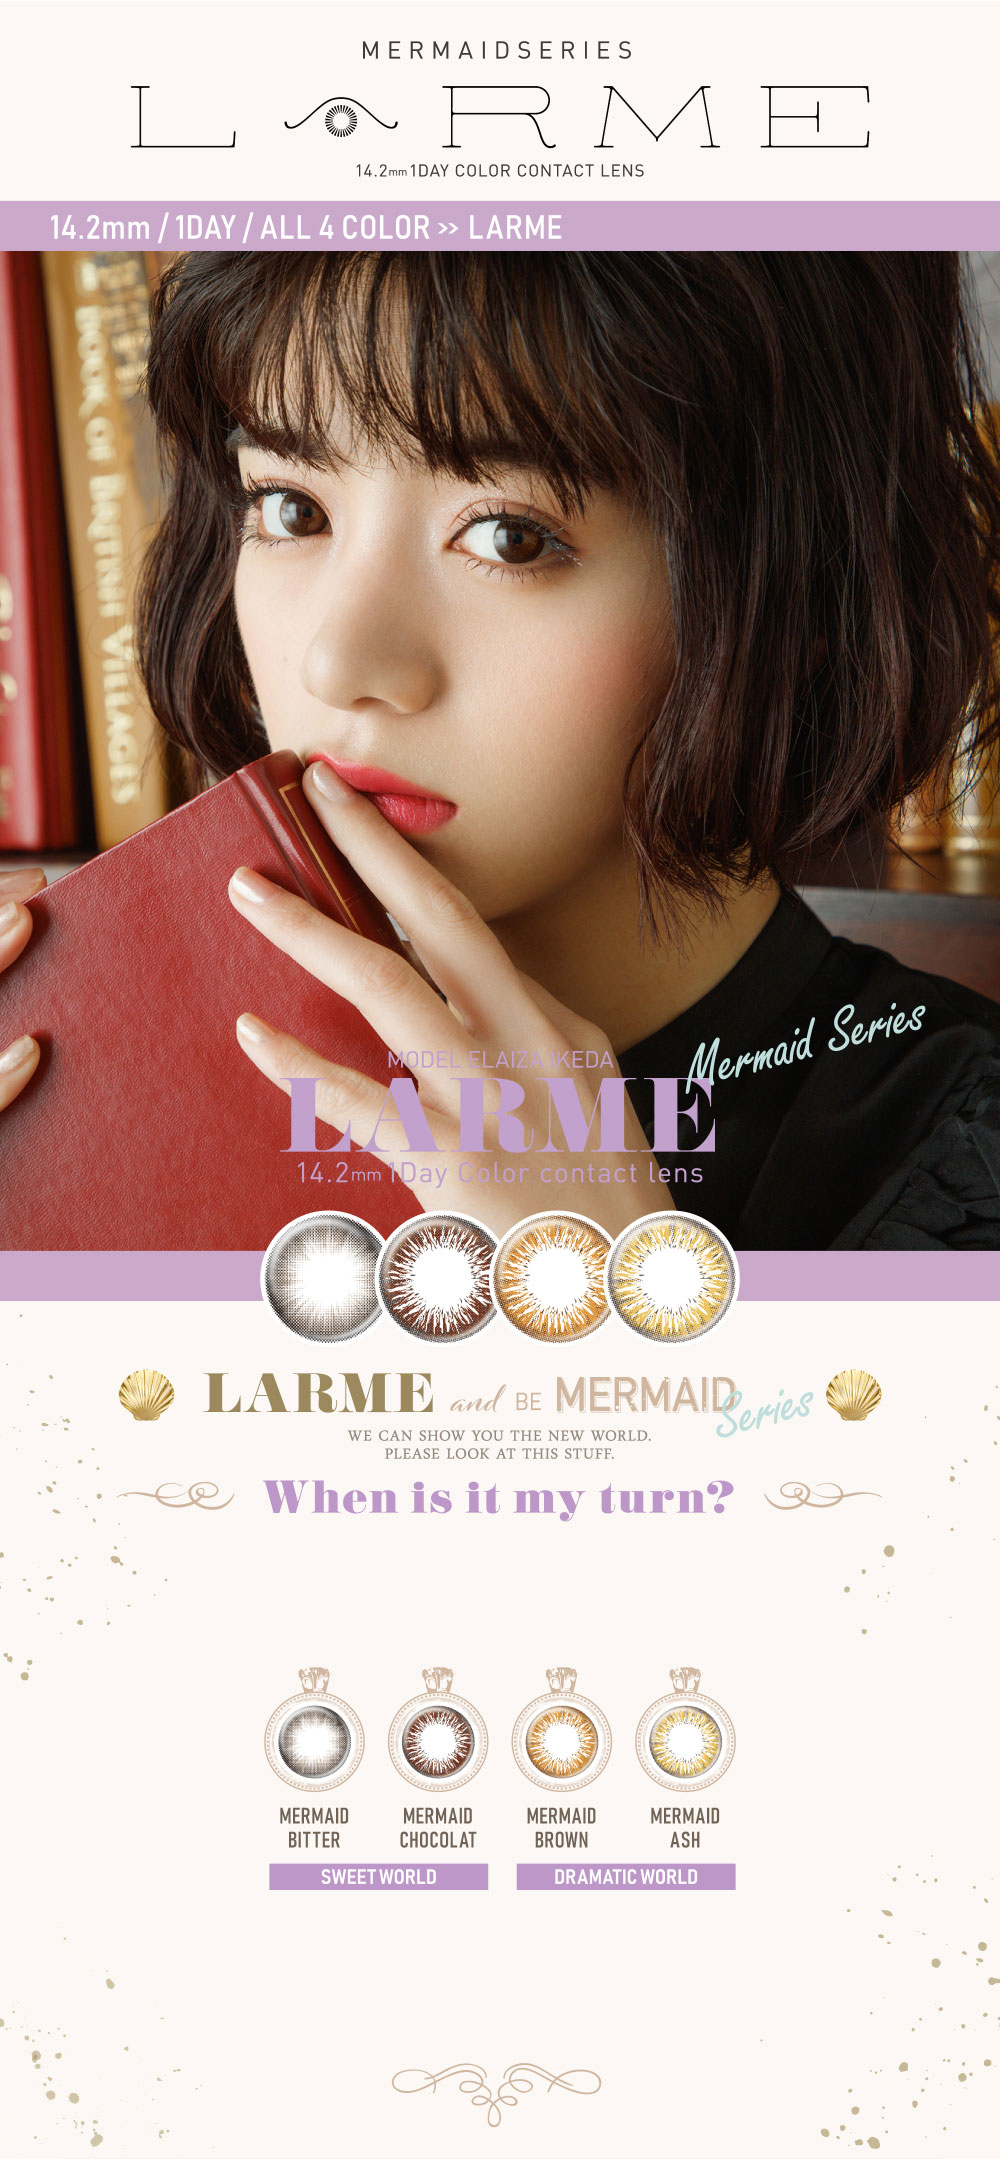 LARME MERMAIDSERIES